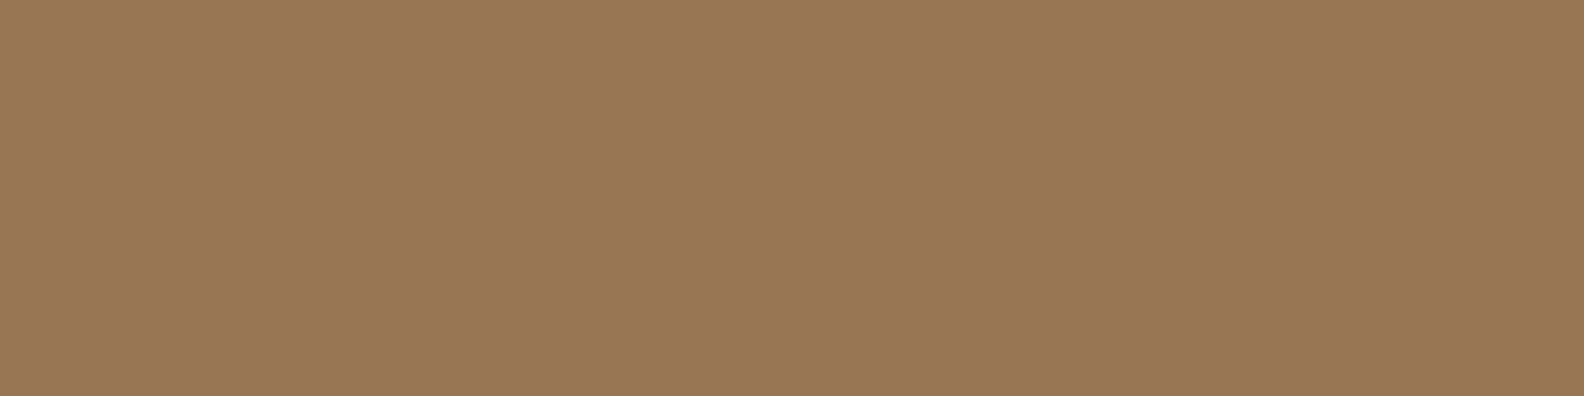 1584x396 Pale Brown Solid Color Background